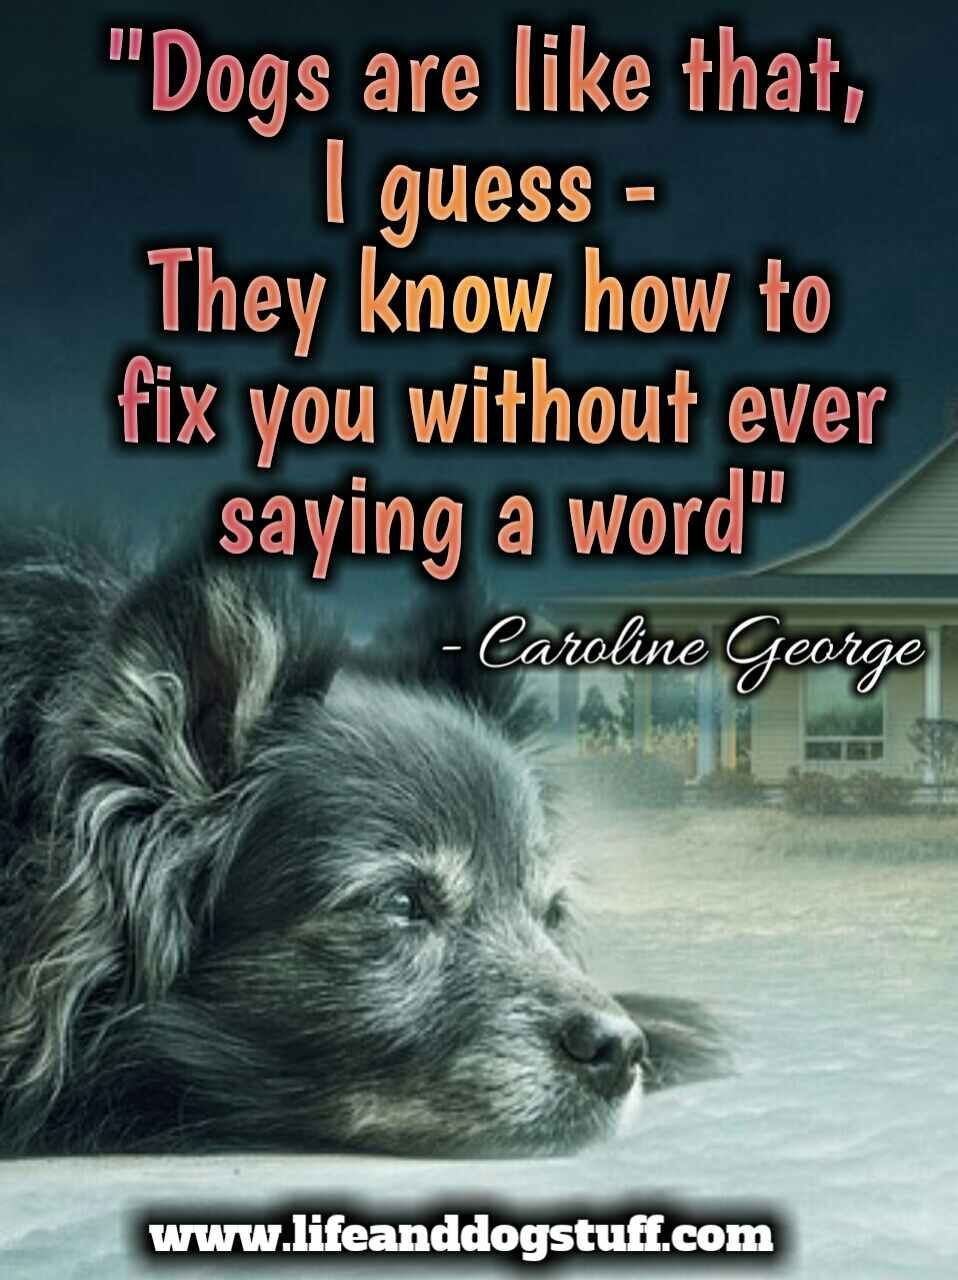 Dog Quotes Pet Quotes Inspirational Quotes Dog Quotes And Sayings Dogquotes Dog Quotes Love Dog Quotes Inspirational Dog Quotes